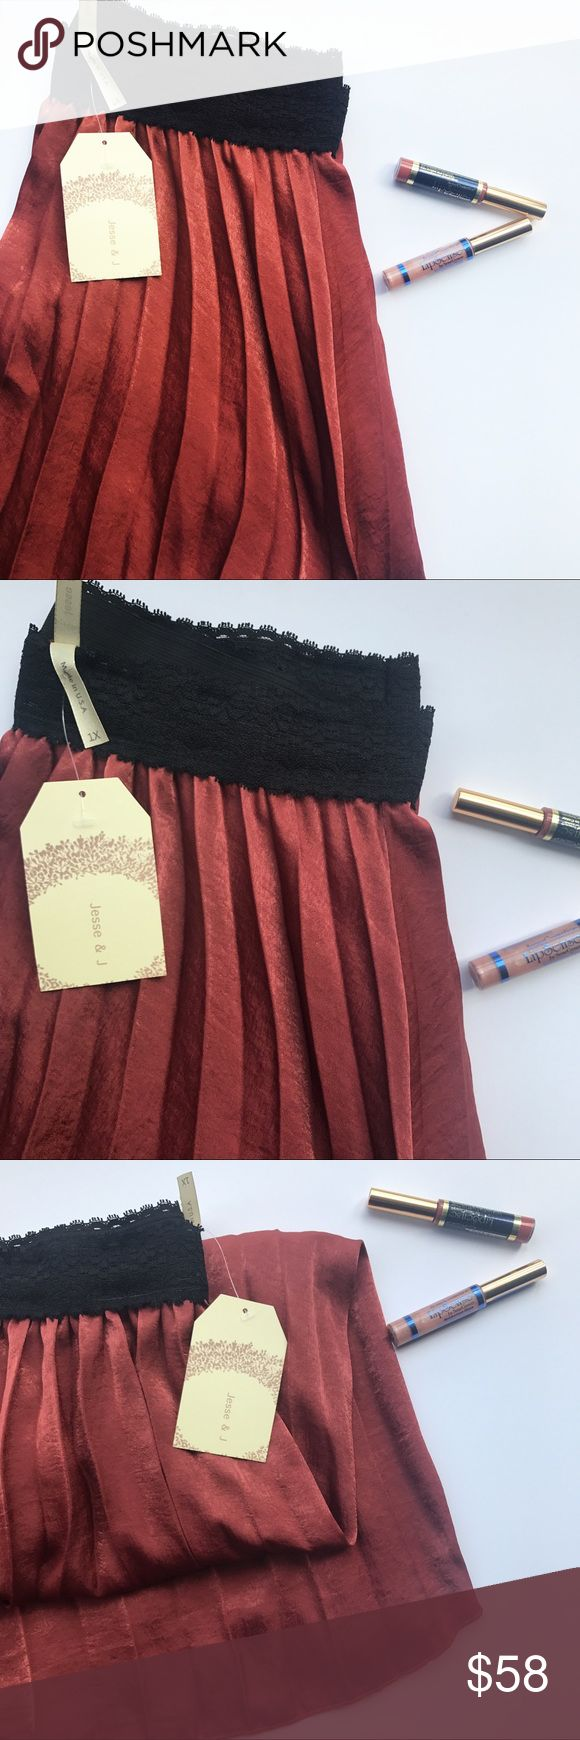 Sleek Rusty Orange Maxi Skirt STUNNING skirt • Soft Pleats • Silky smooth material • hits under the knee when worn as high waisted • Open to Reasonable offers • True to size 📦 BUNDLE for a private discount! Skirts Maxi